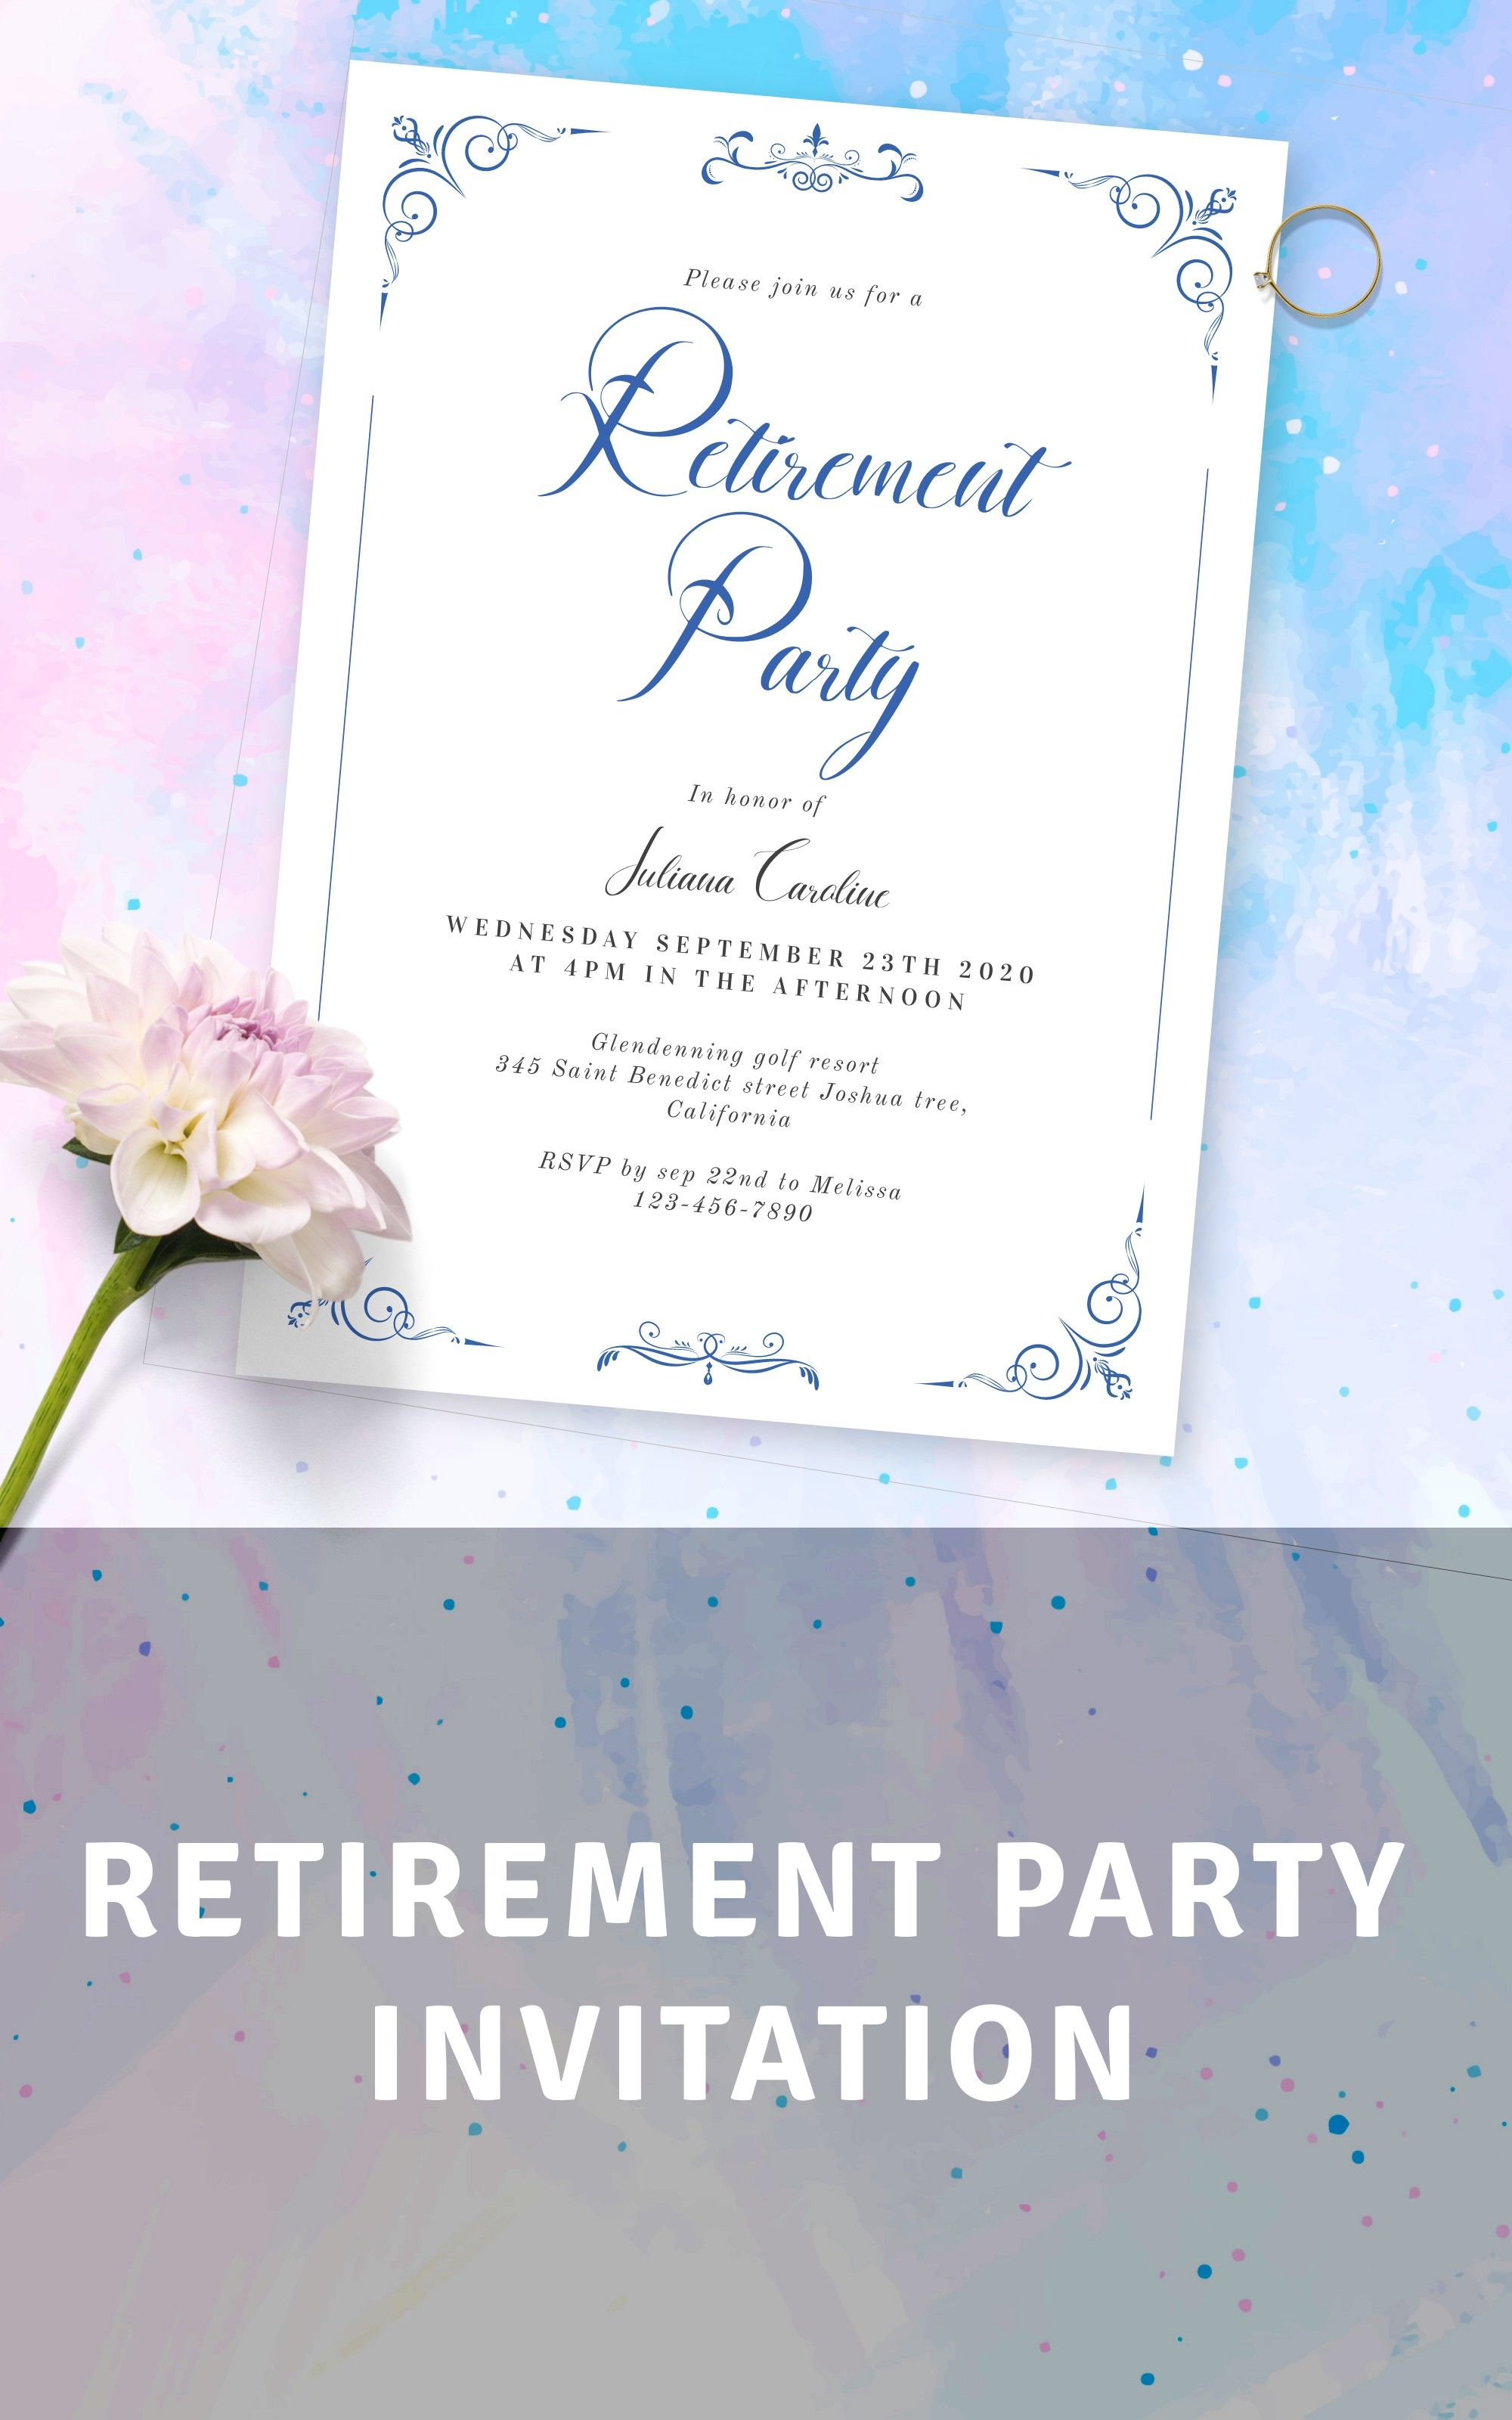 Retirement Party Invitation - Download & Print in 5